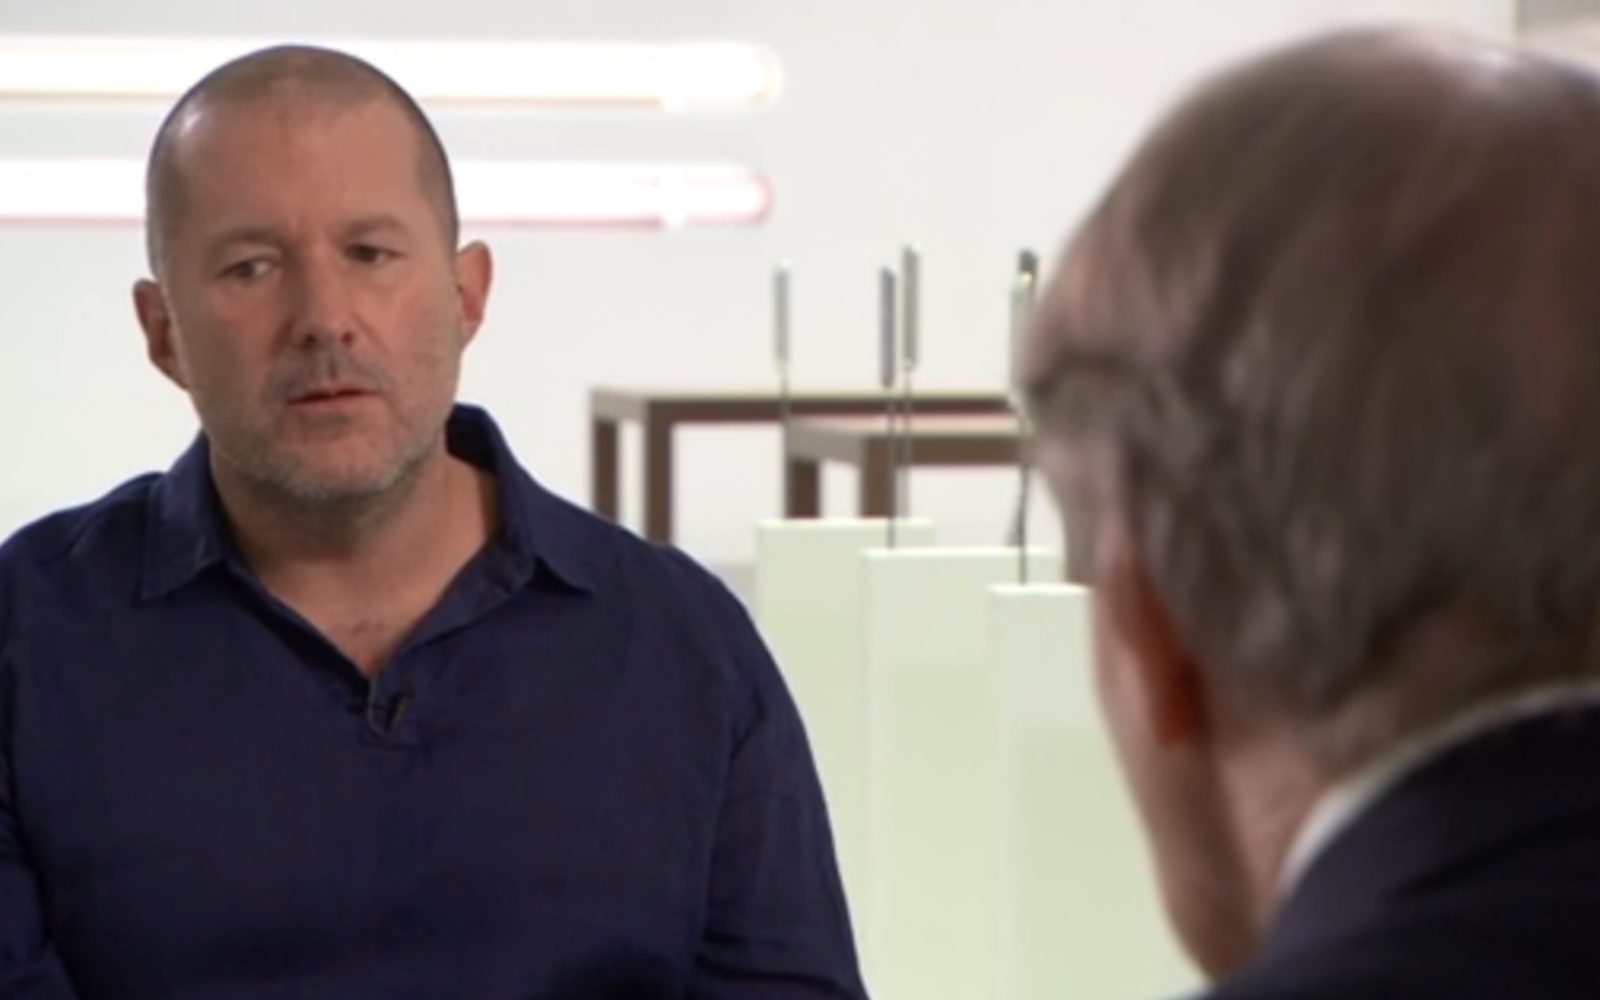 Jony Ive talks relationship with Steve Jobs, design culture, more in Charlie Rose interview